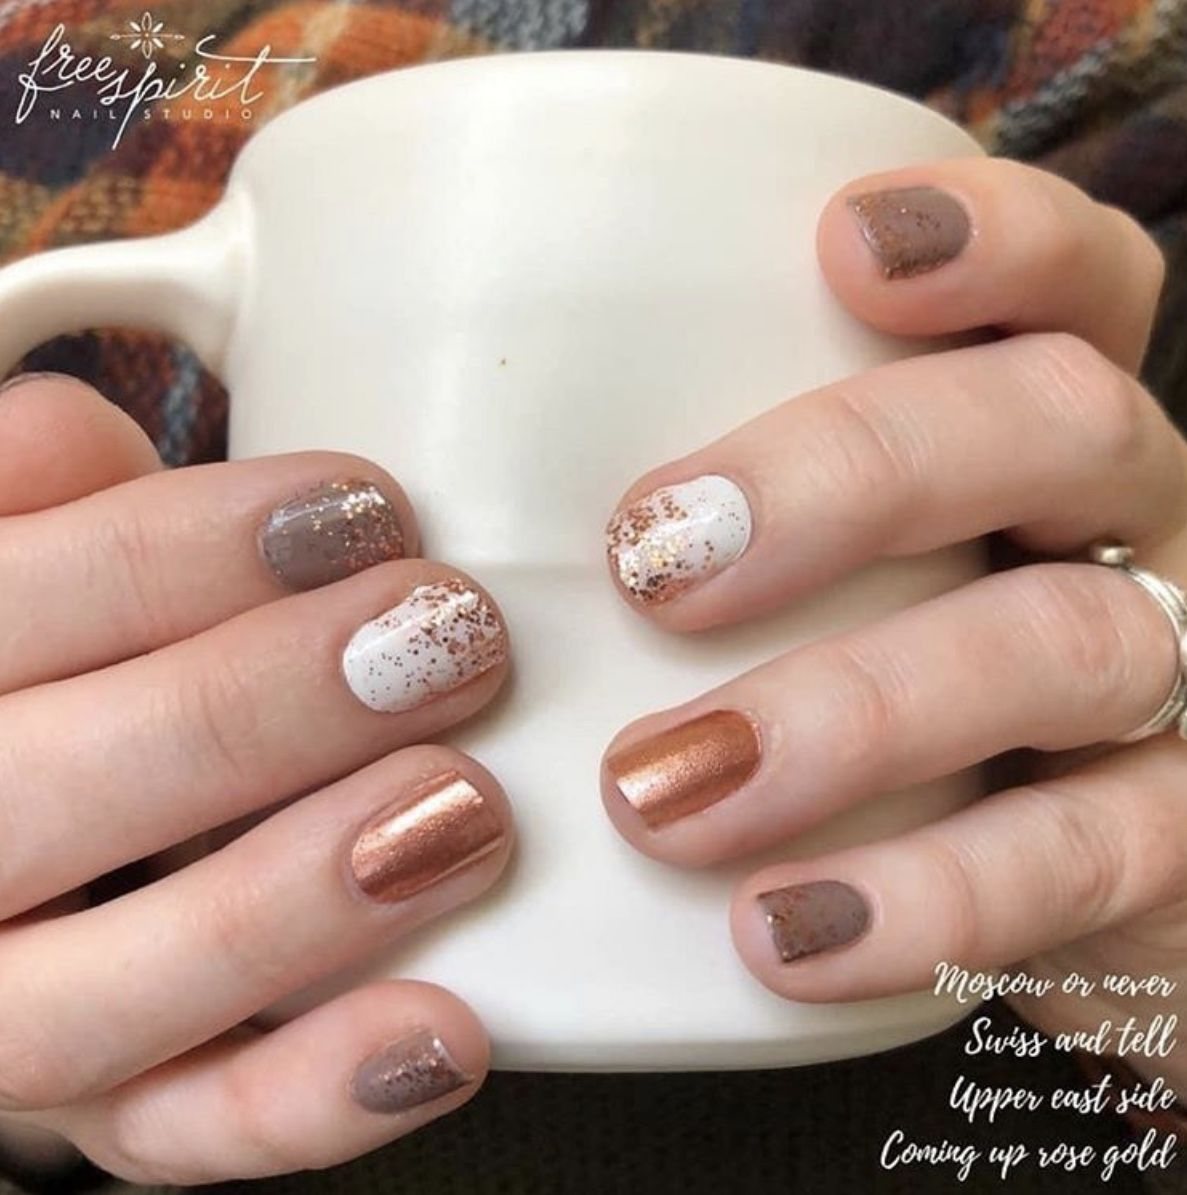 Mixed manicure